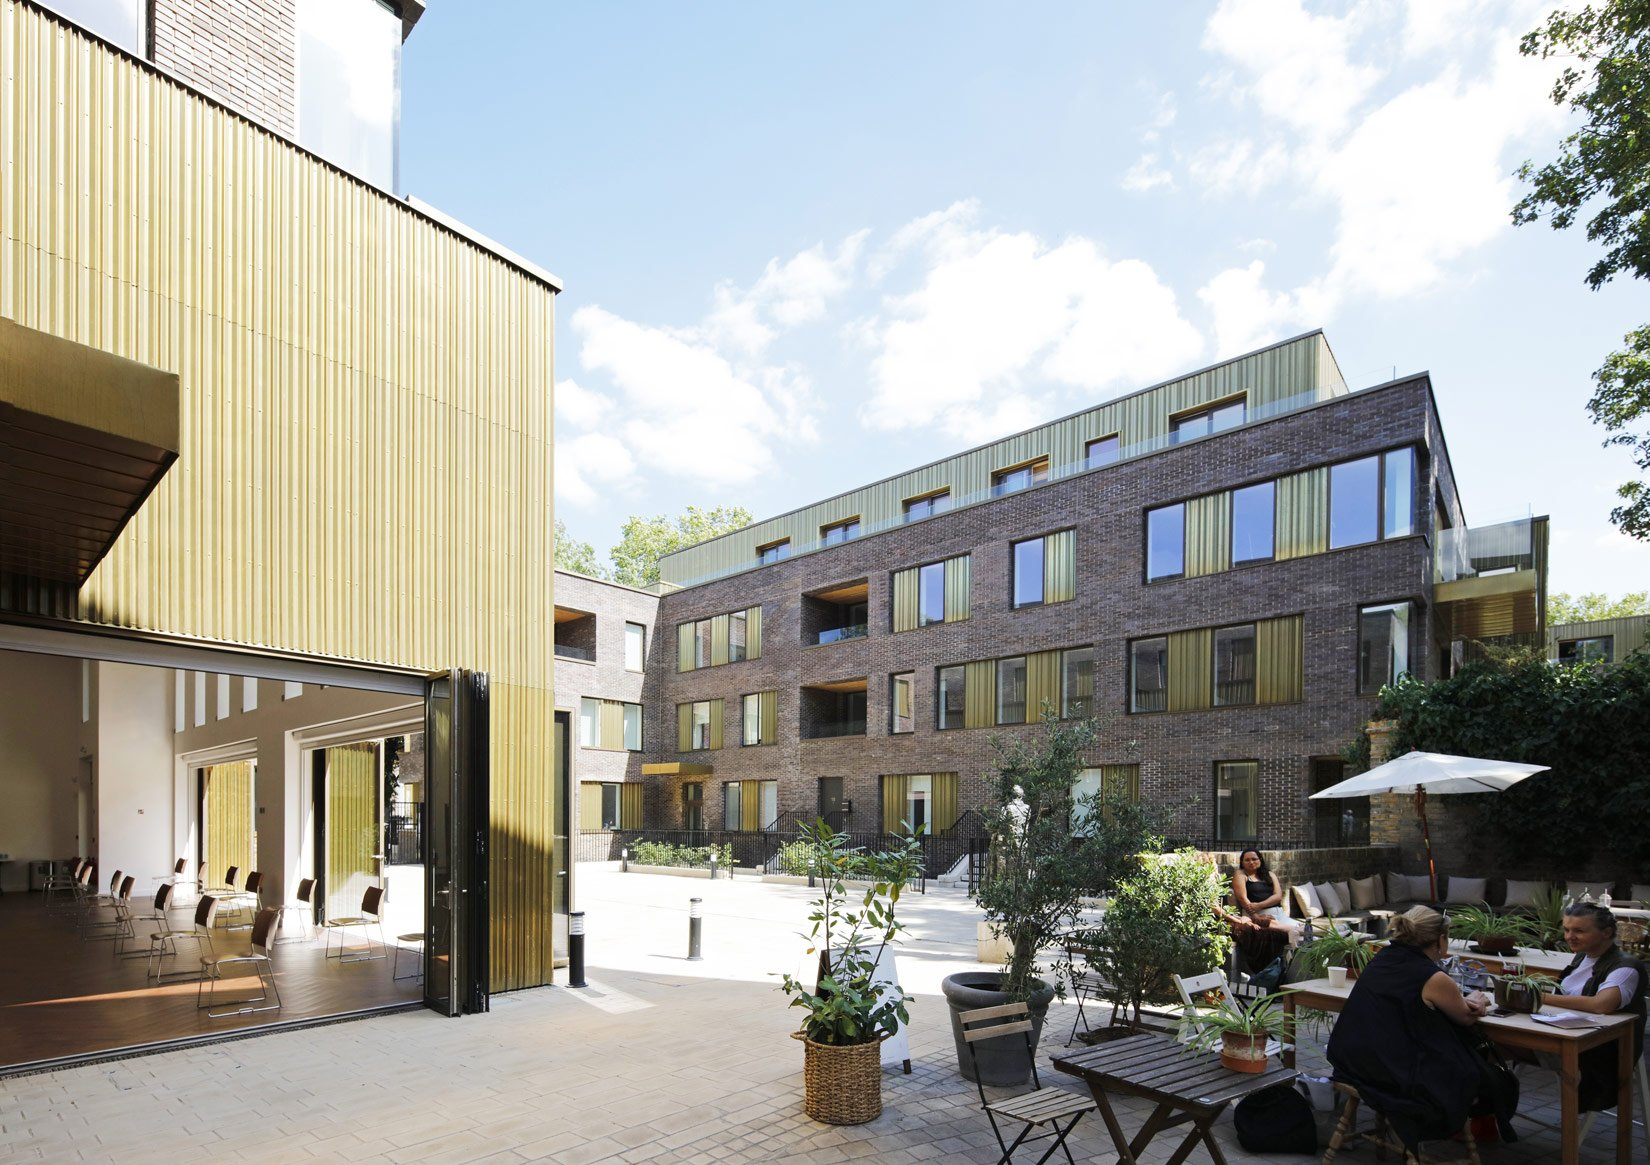 Hackney Gardens, Courtyard and people